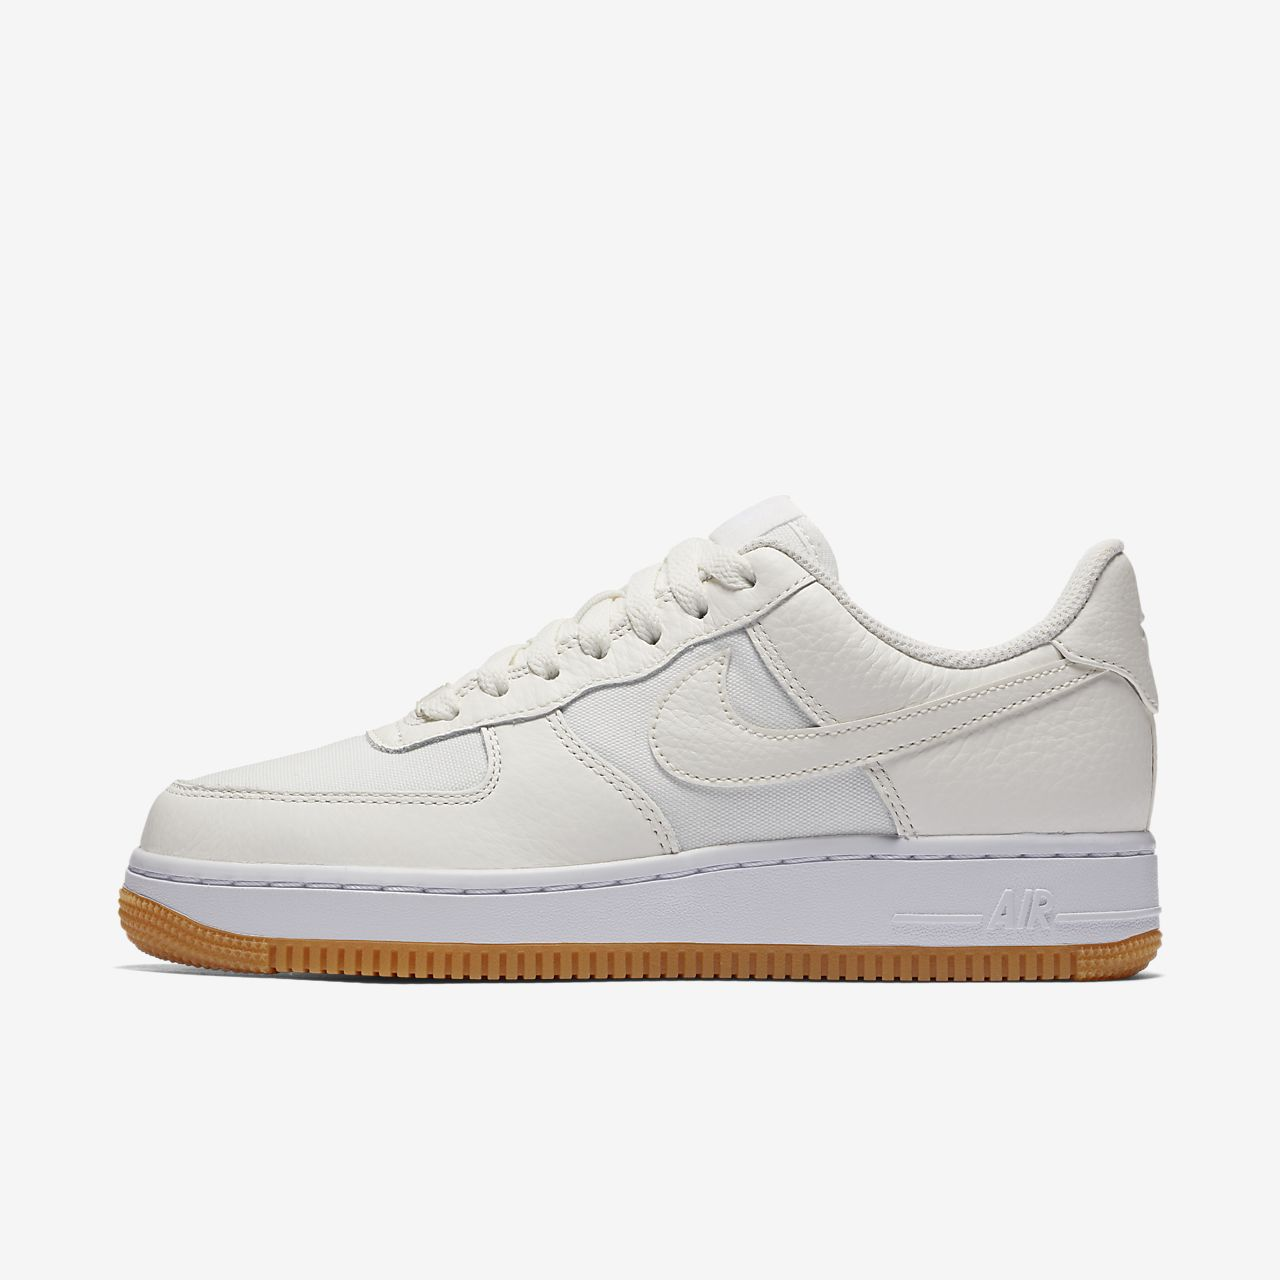 gum sole nike air force 1 nz